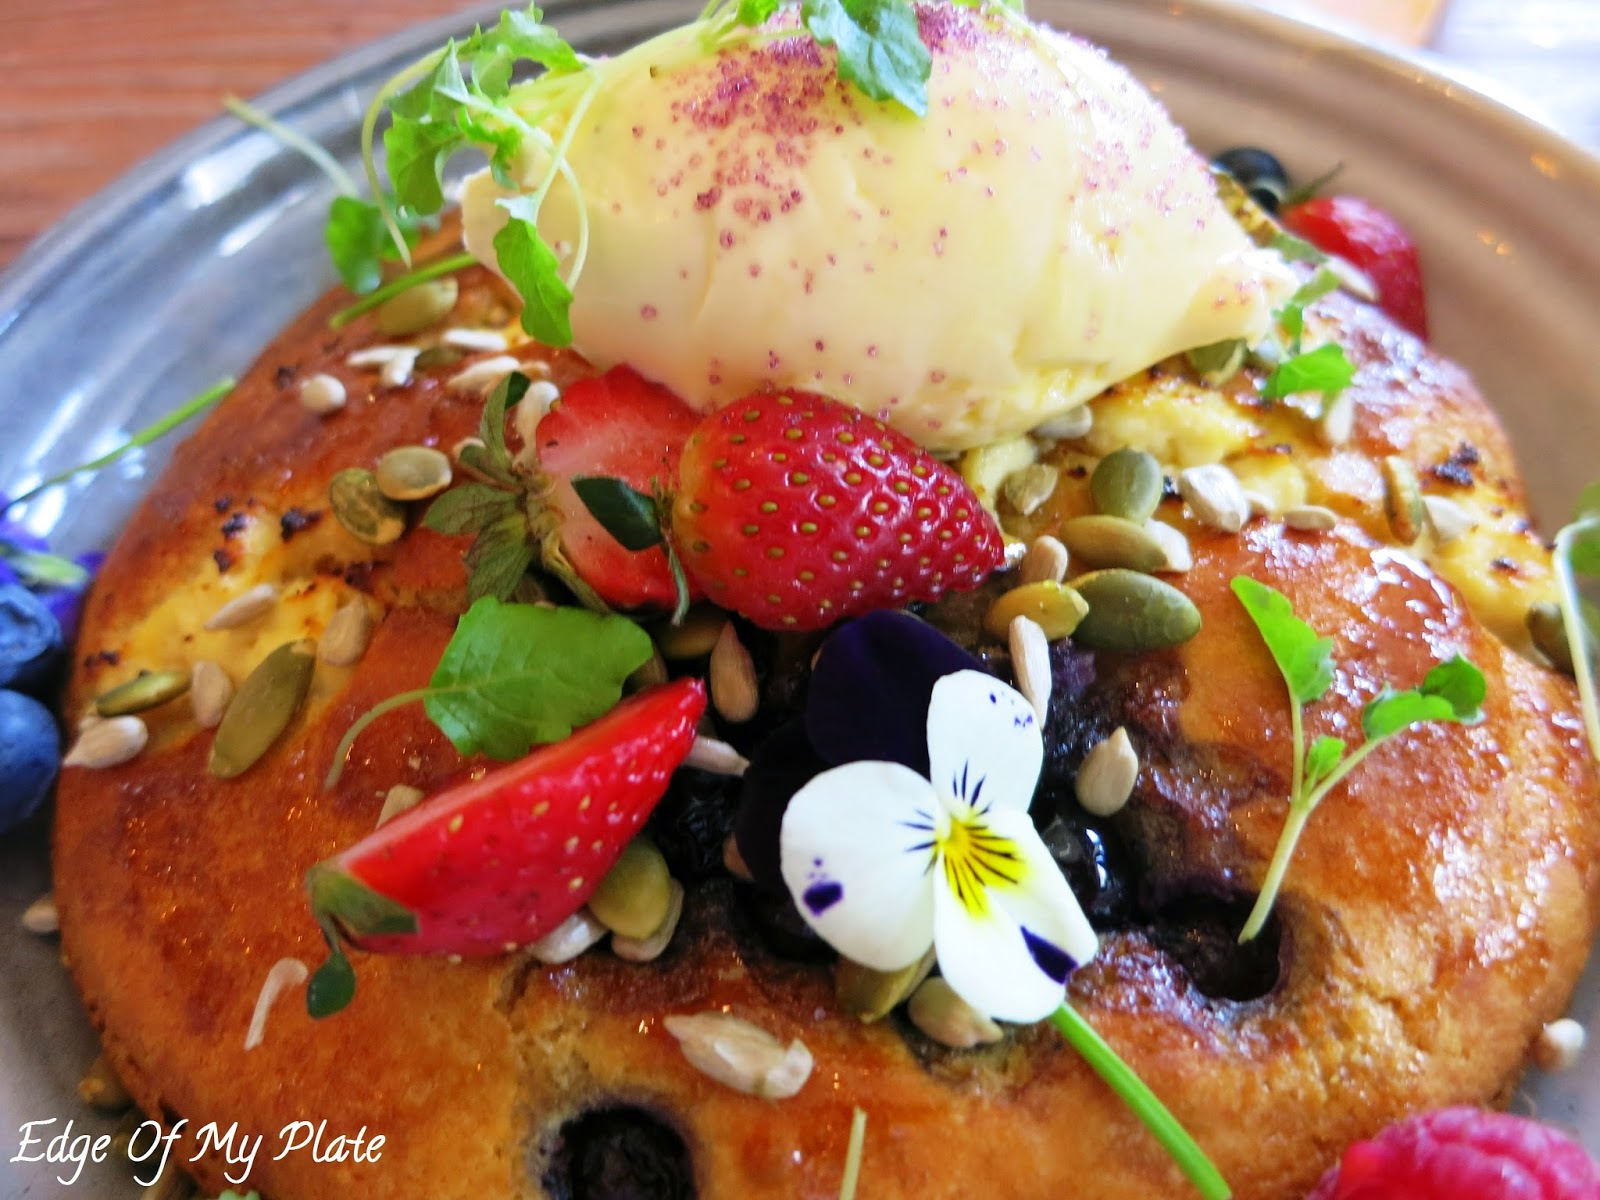 Blueberry and ricotta hotcake with berries, organic maple, seeds and double cream